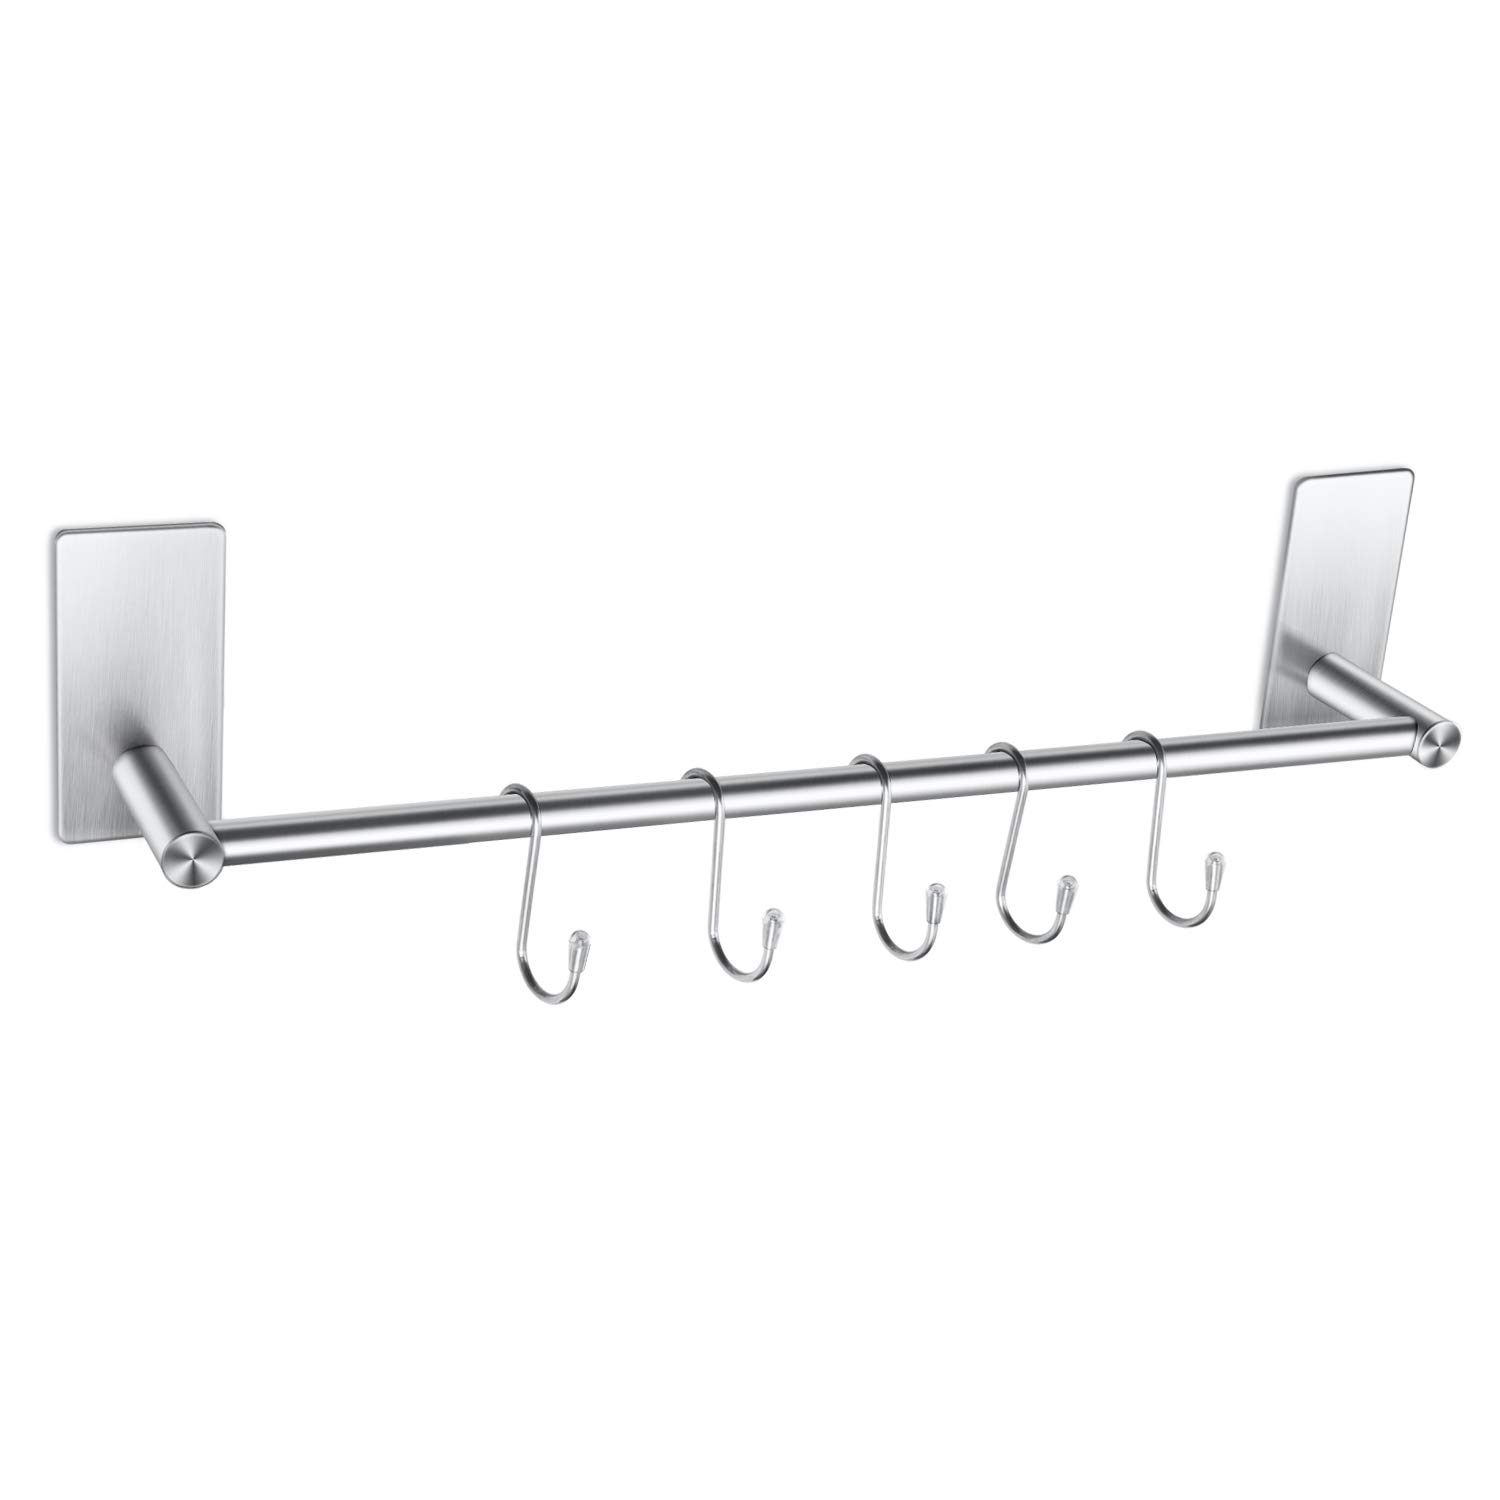 HBlife 3M Self Adhesive Towel Rail Bar with 5 Hooks, Brushed Finish SUS 304 Stainless Steel Towel Holder Hanger for Kitchen Bathrooms Lavatory Closets